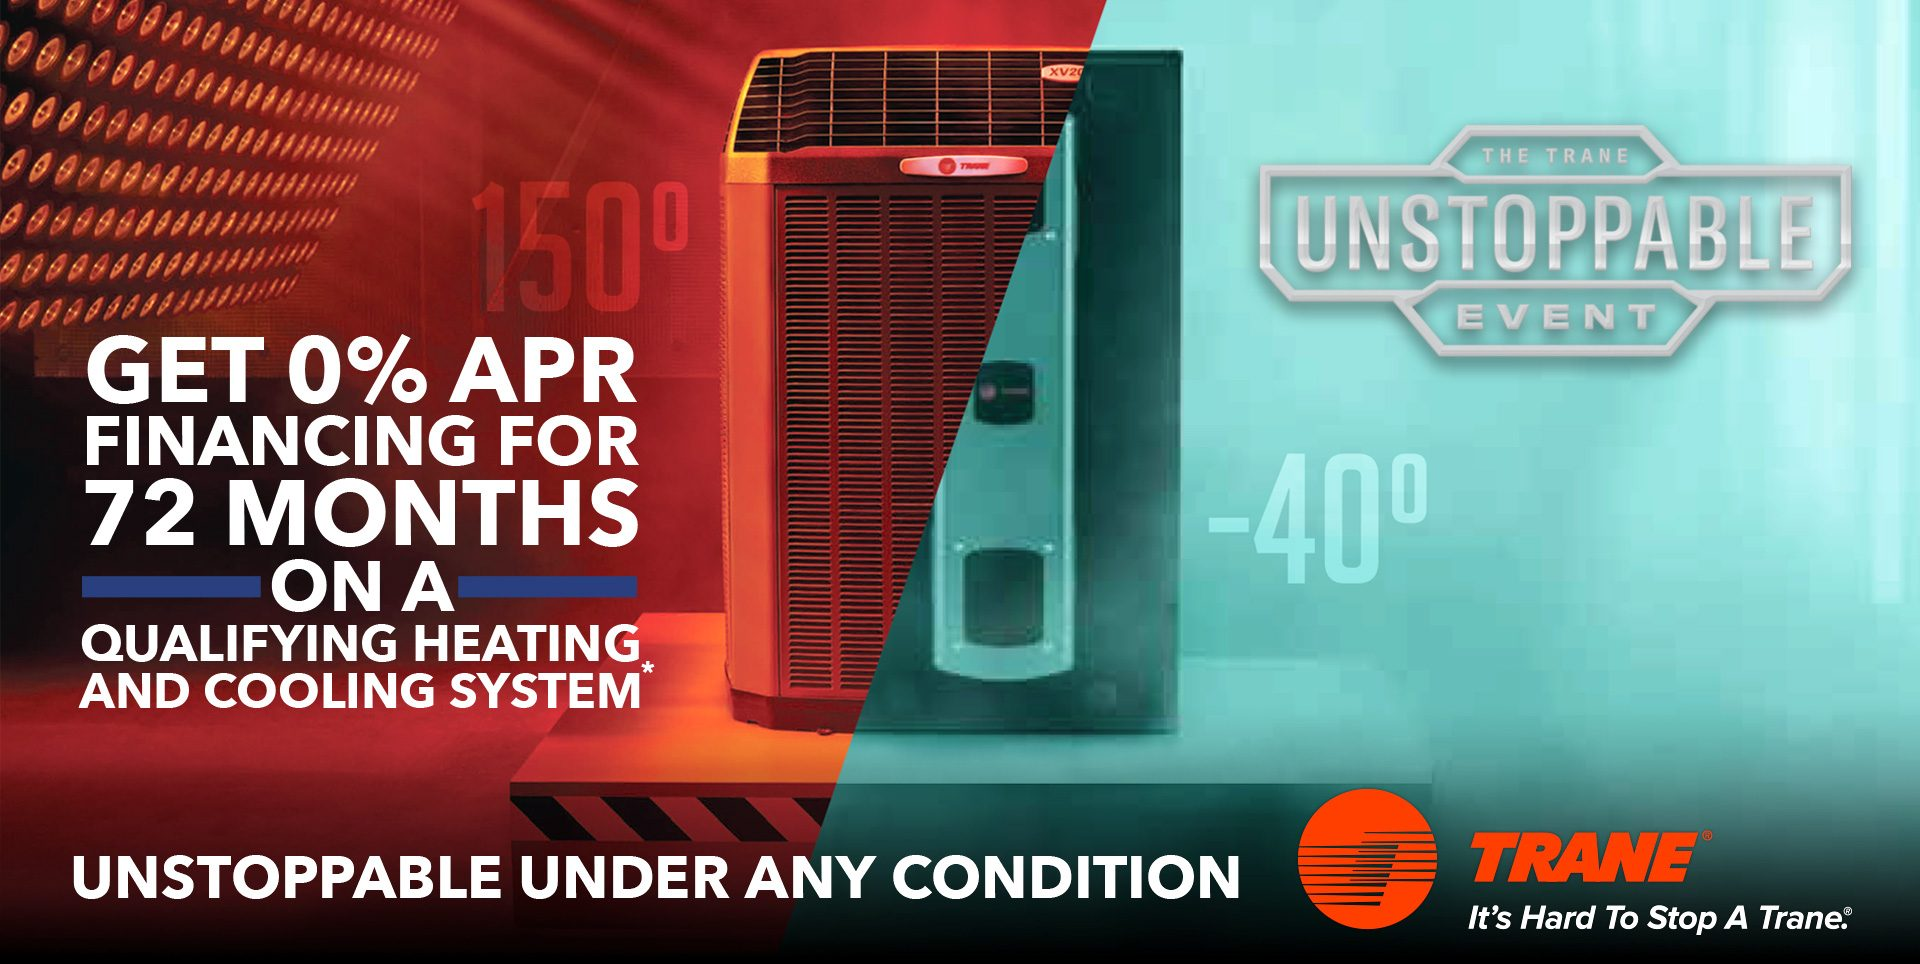 Trane Specials: Get 0% financing for 72 months on a qualifying heating and cooling system